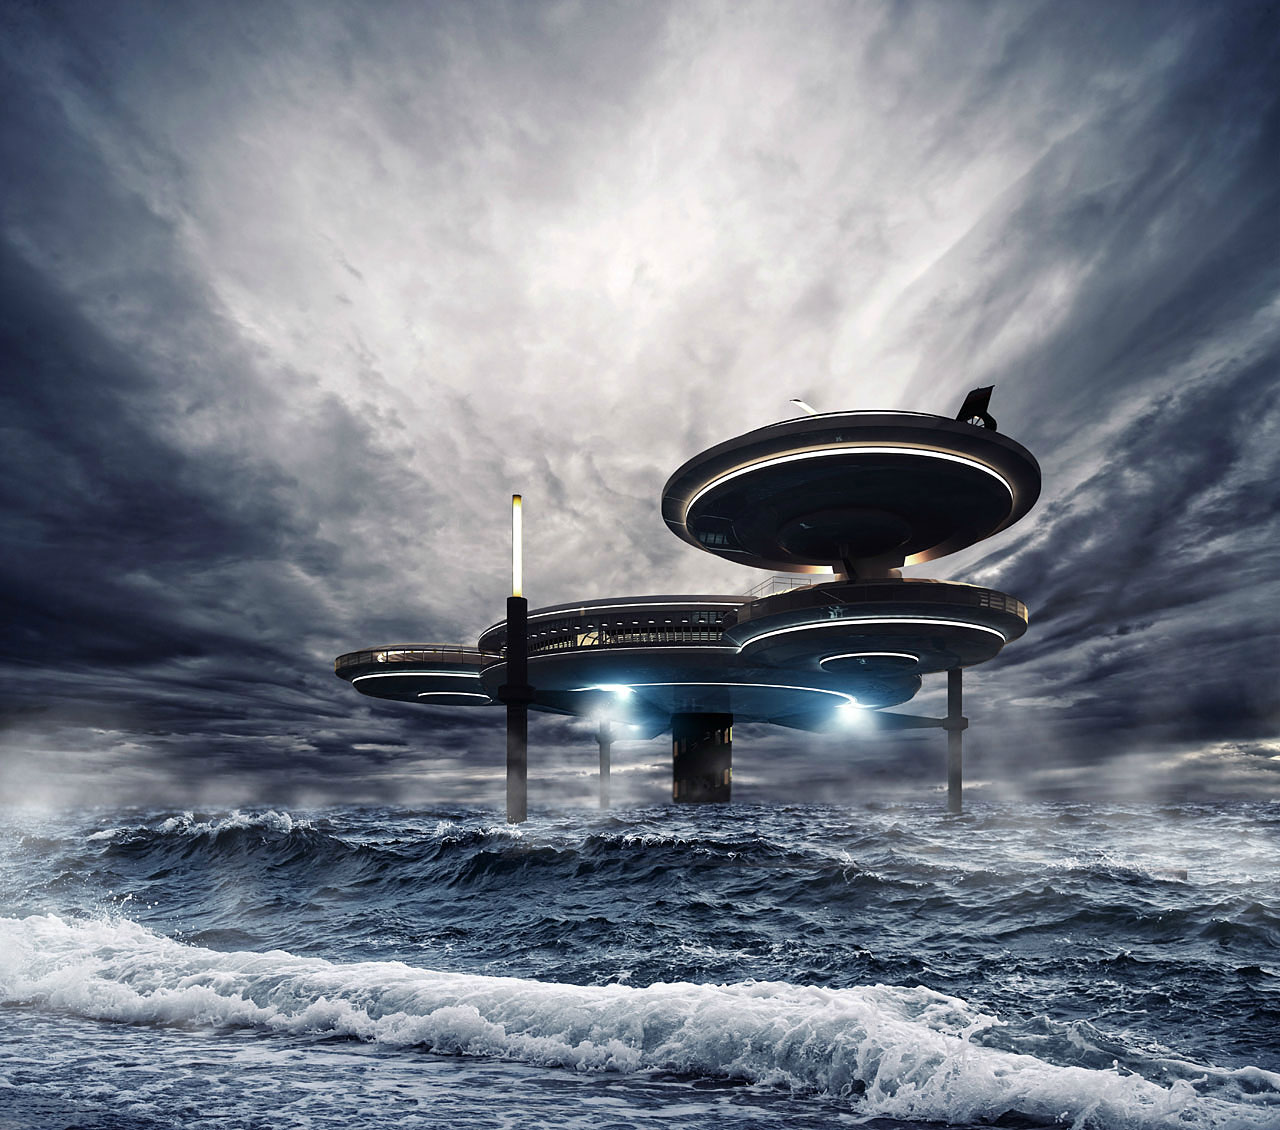 The Water Discus Underwater Hotel planned for Dubai (4)